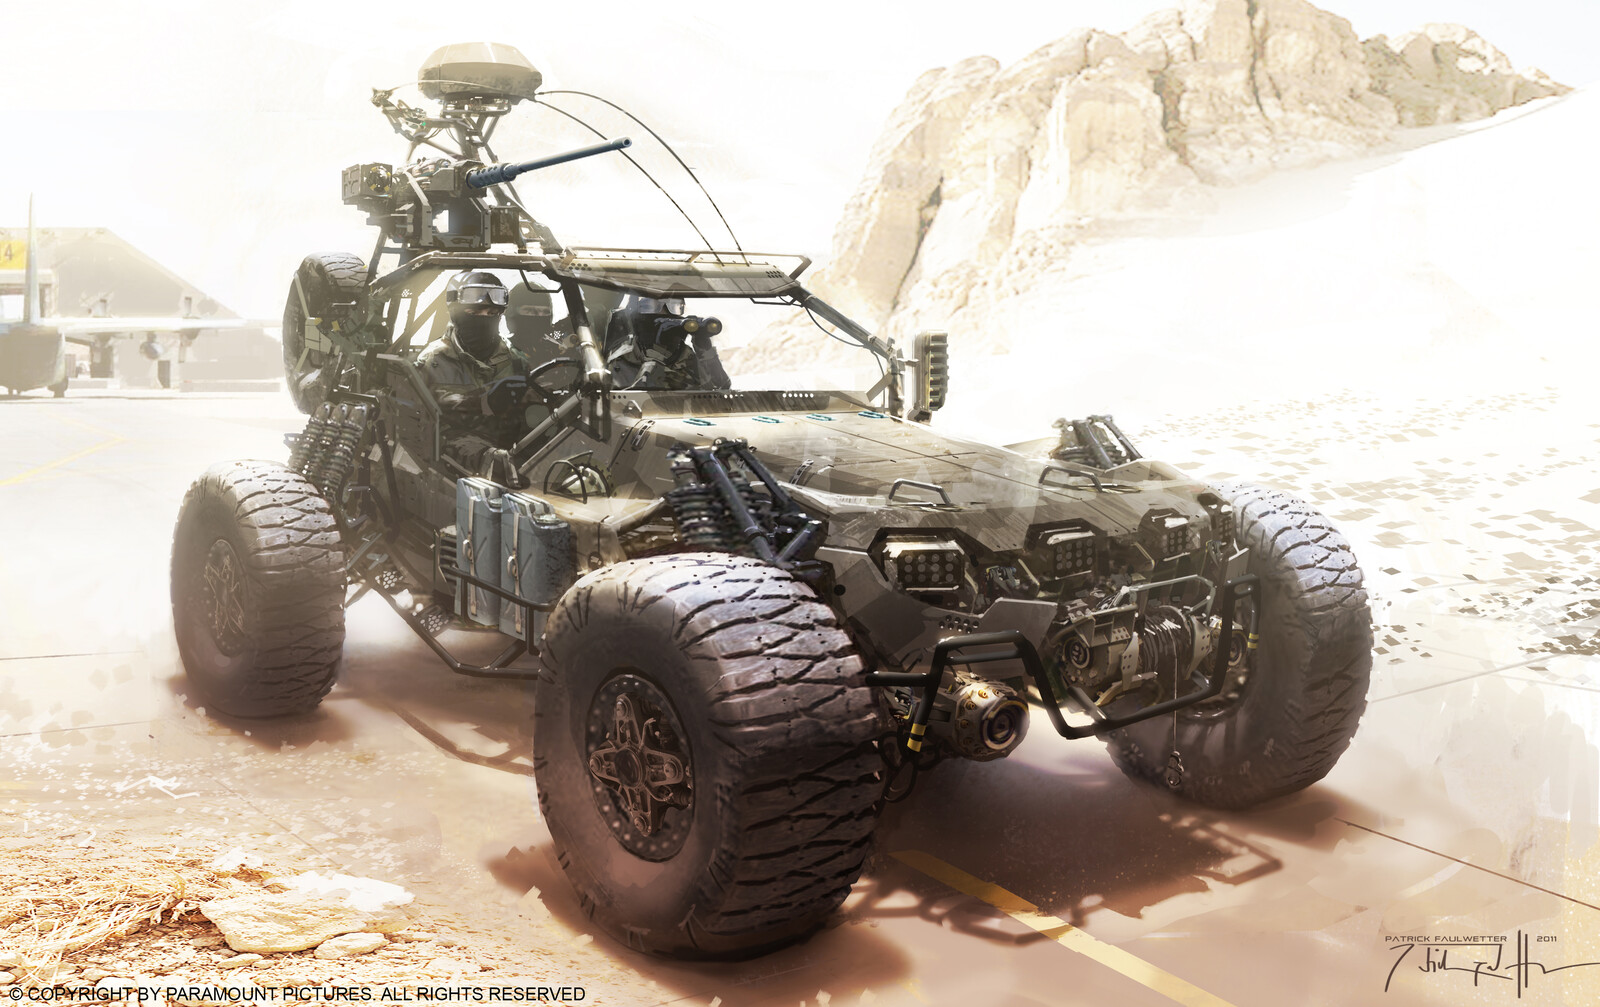 GI Joe : Retaliation Buggy concept